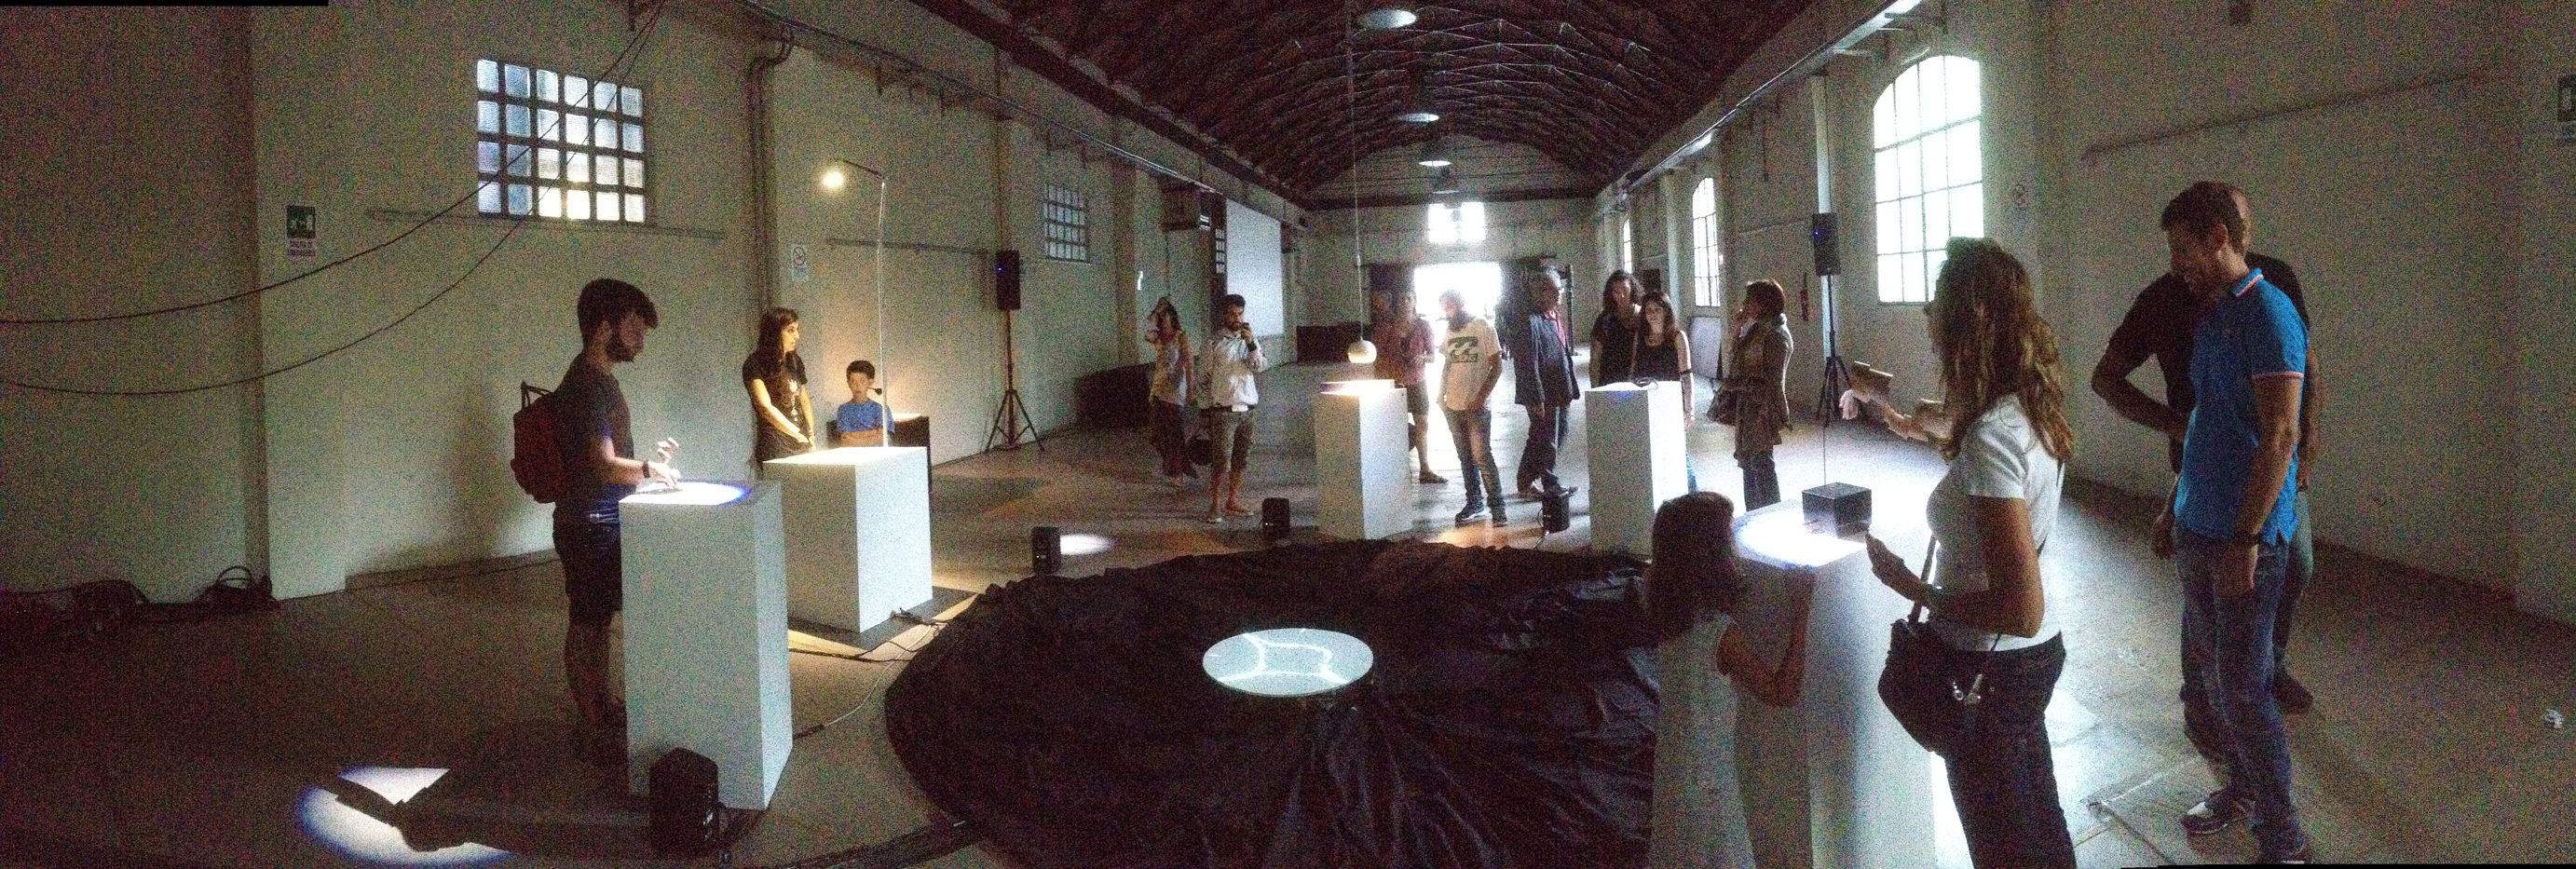 The Cave of Sounds by Tim Murray-Browne and members of Music Hackspace. Audiences and children playing with the interactive sound installation of digital musical instruments using movement, shadow, light and touch at 90dB Festival of the Sonic Arts Award, Rome, Sep 2014.